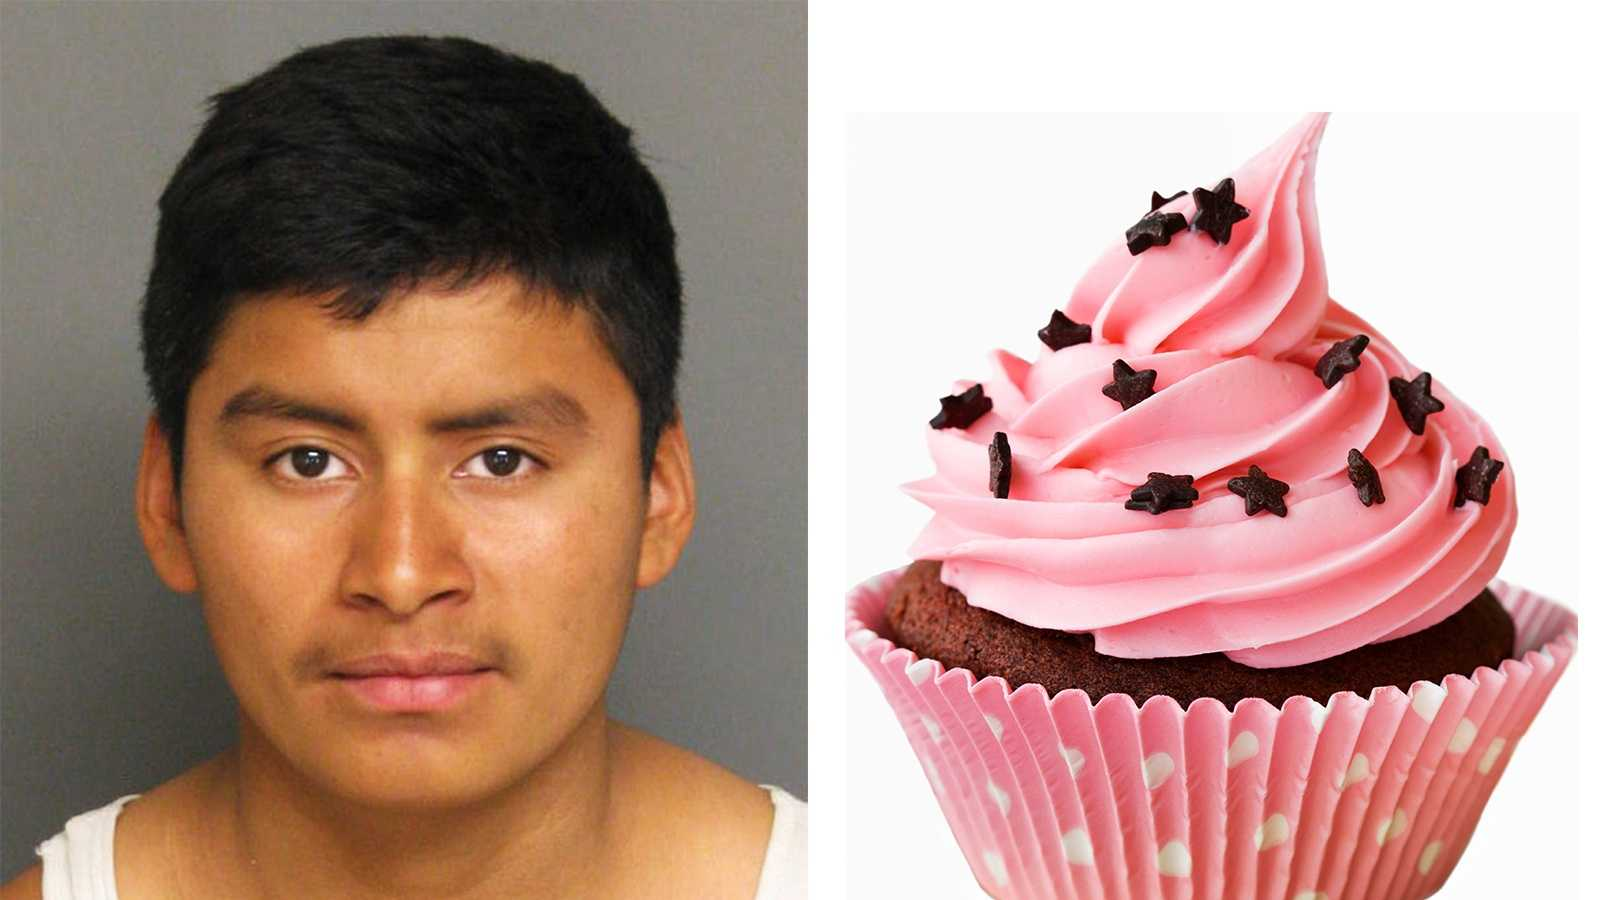 Leonardo Salvador is accused of robbing an 8-year-old boy of his cupcake in Greenfield.